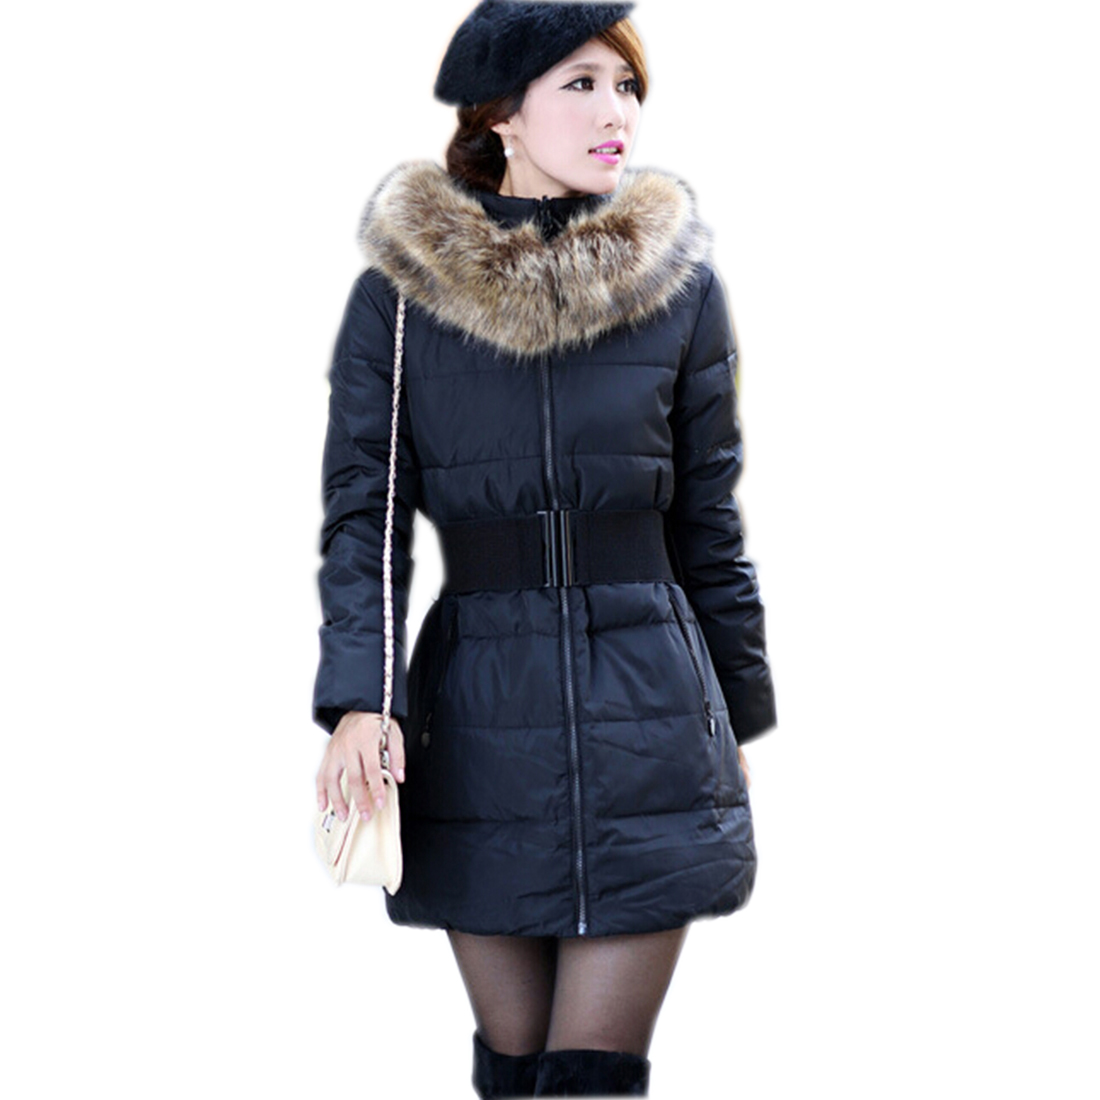 Fashion 2017 Autumn Winter Women Long Parka Female Warm Jacket Coat Slim Hooded Fur Collar Outwear Overcoats With Belt women elegant winter warm long coat down padded jacket slim fur collar hooded parka coats 2017 female slim long parka with belt